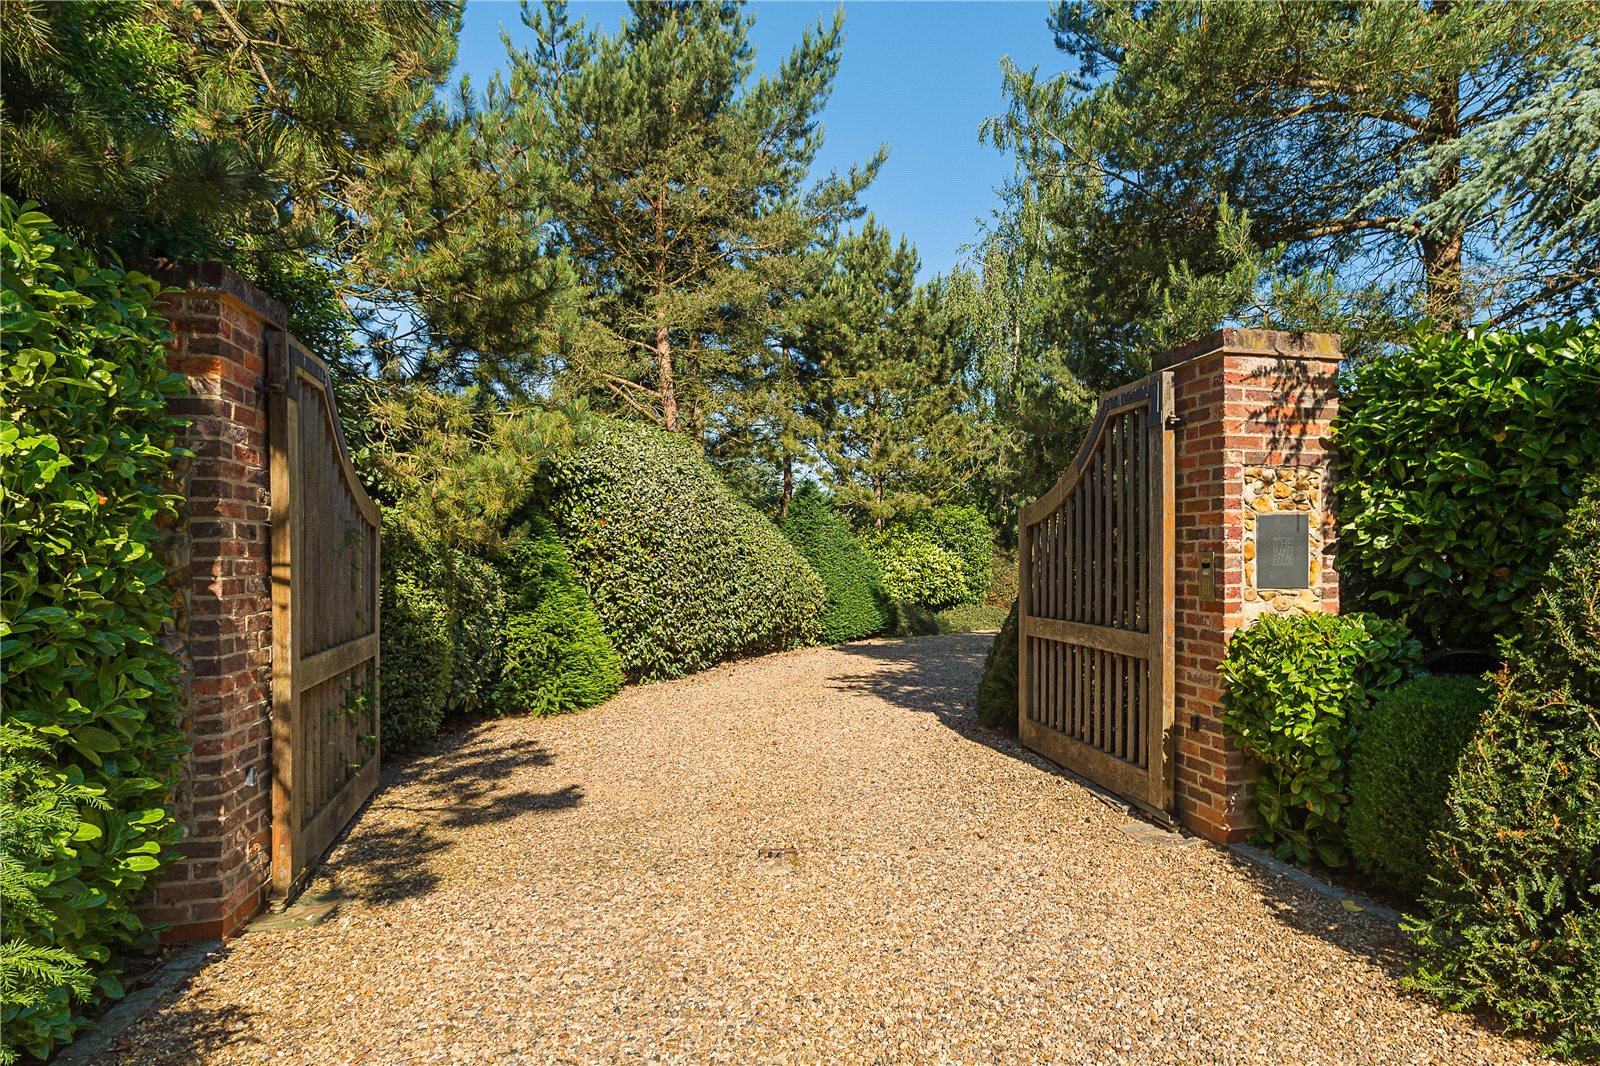 Villa per Vendita alle ore Three Houses Lane, Codicote, Hitchin, Hertfordshire, SG4 Hitchin, Inghilterra